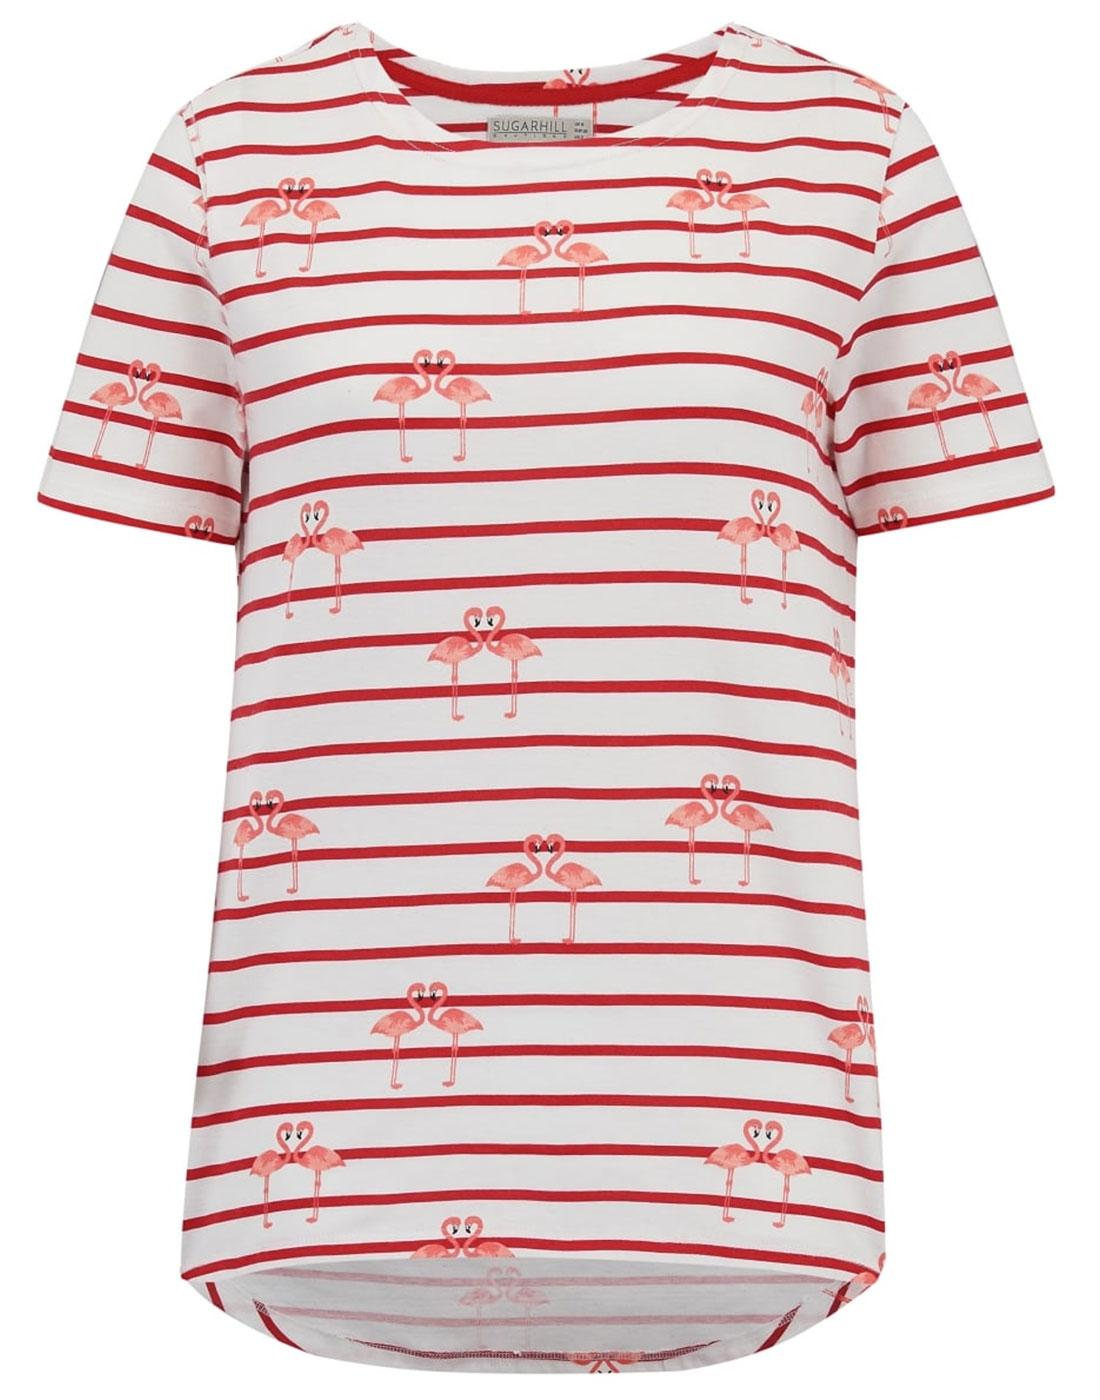 Cara SUGARHILL BOUTIQUE Retro Flamingo Print Tee